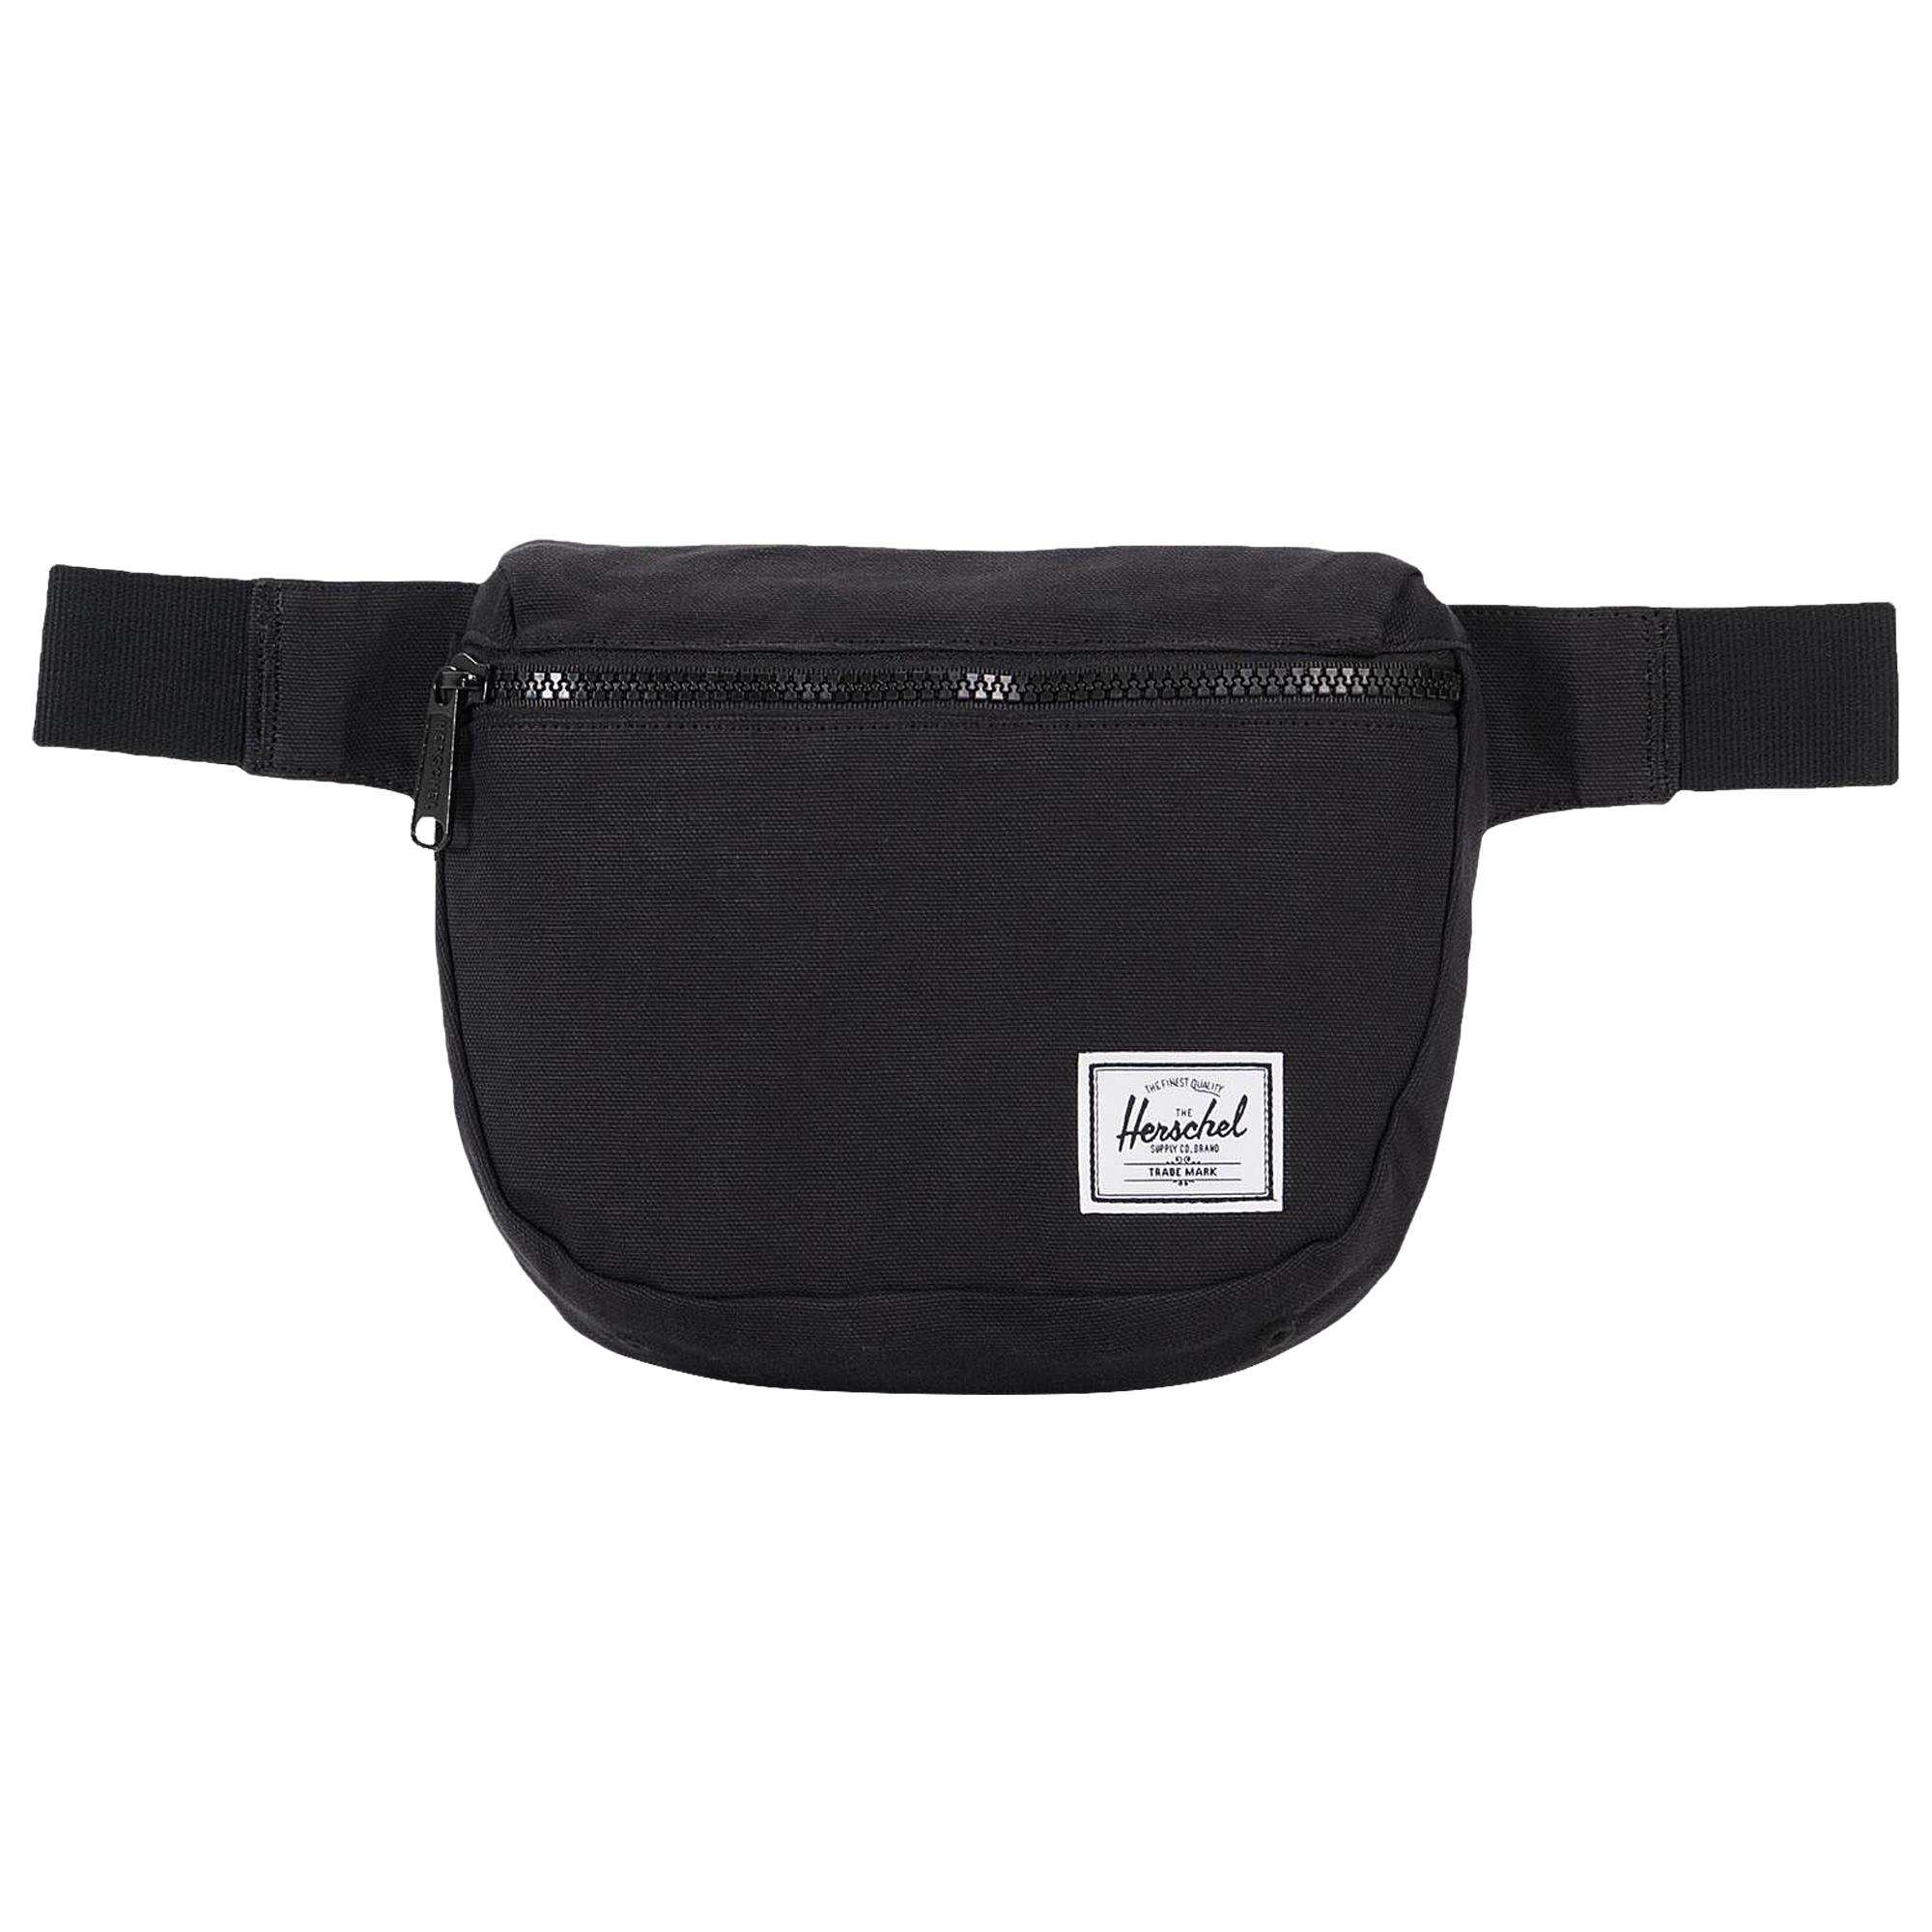 a37b9a3a044 Lyst - Herschel Supply Co. Fanny Pack in Black